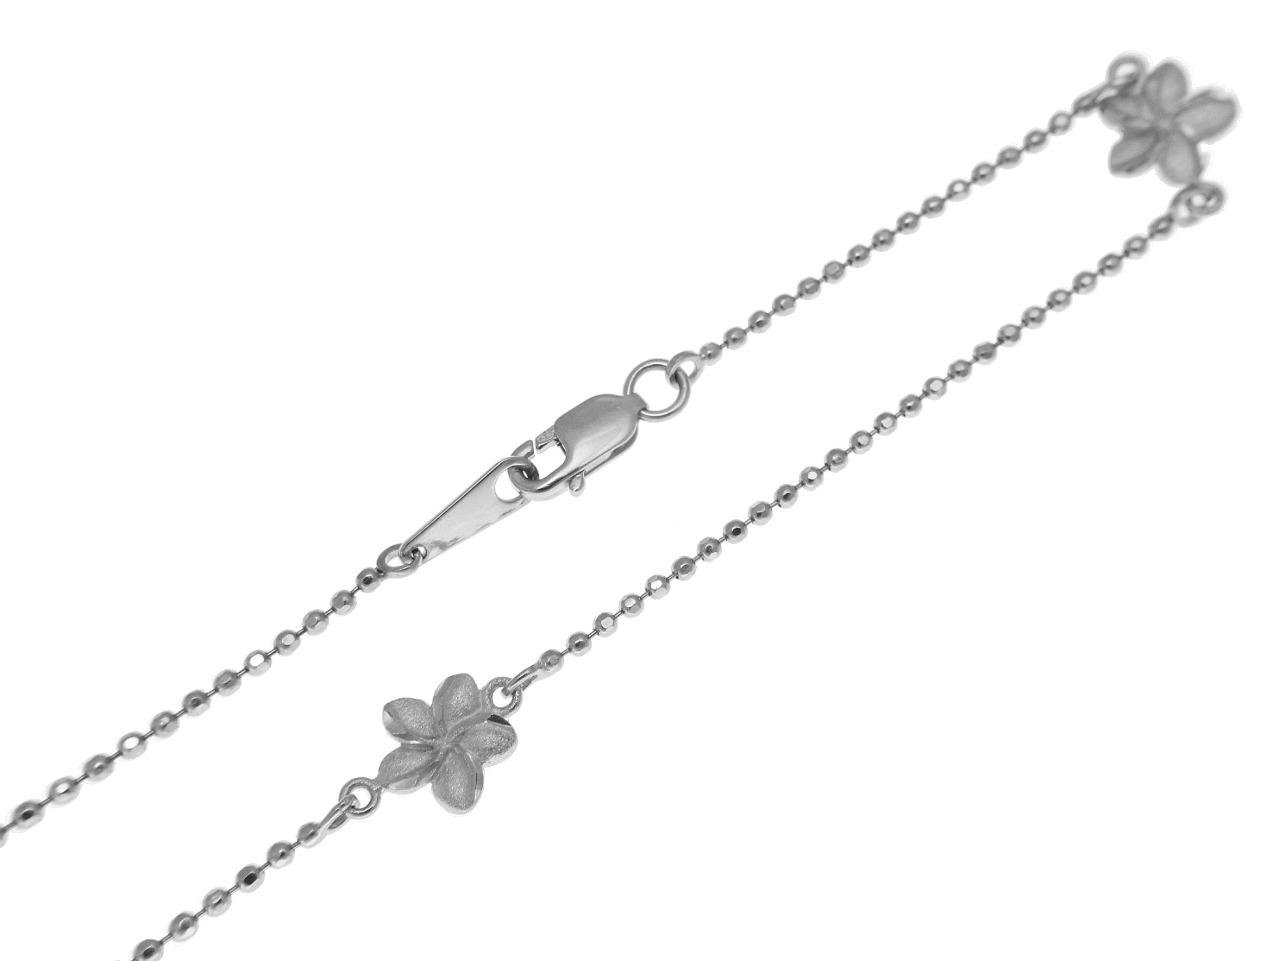 14k solid white gold 2 sided Hawaiian plumeria diamond cut bead chain anklet 9''